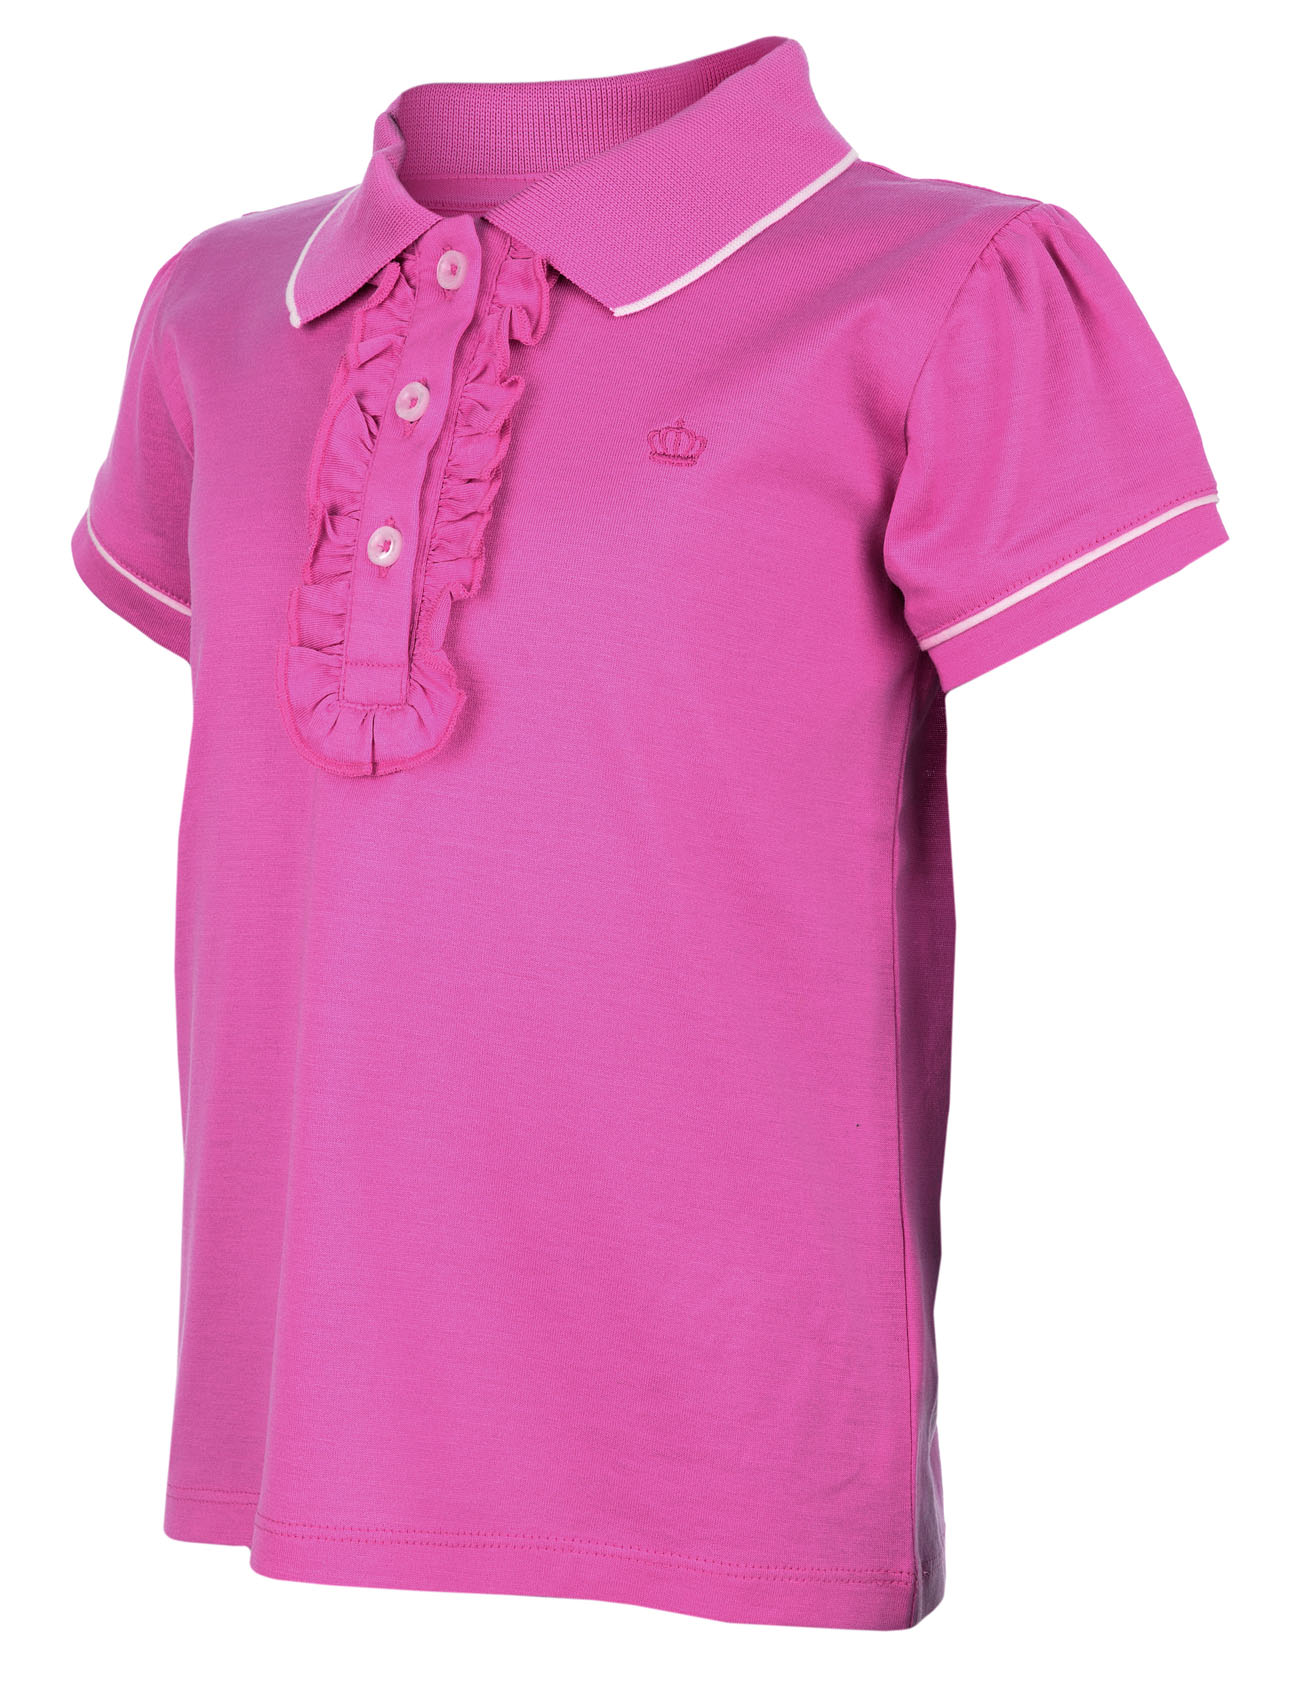 Girls' Polo Ralph Lauren Shirts and T-Shirts at Macy's come in a variety of styles and sizes. Shop Girls' Polo Ralph Lauren Shirts and T-Shirts at Macy's and find the latest styles for you little one today.